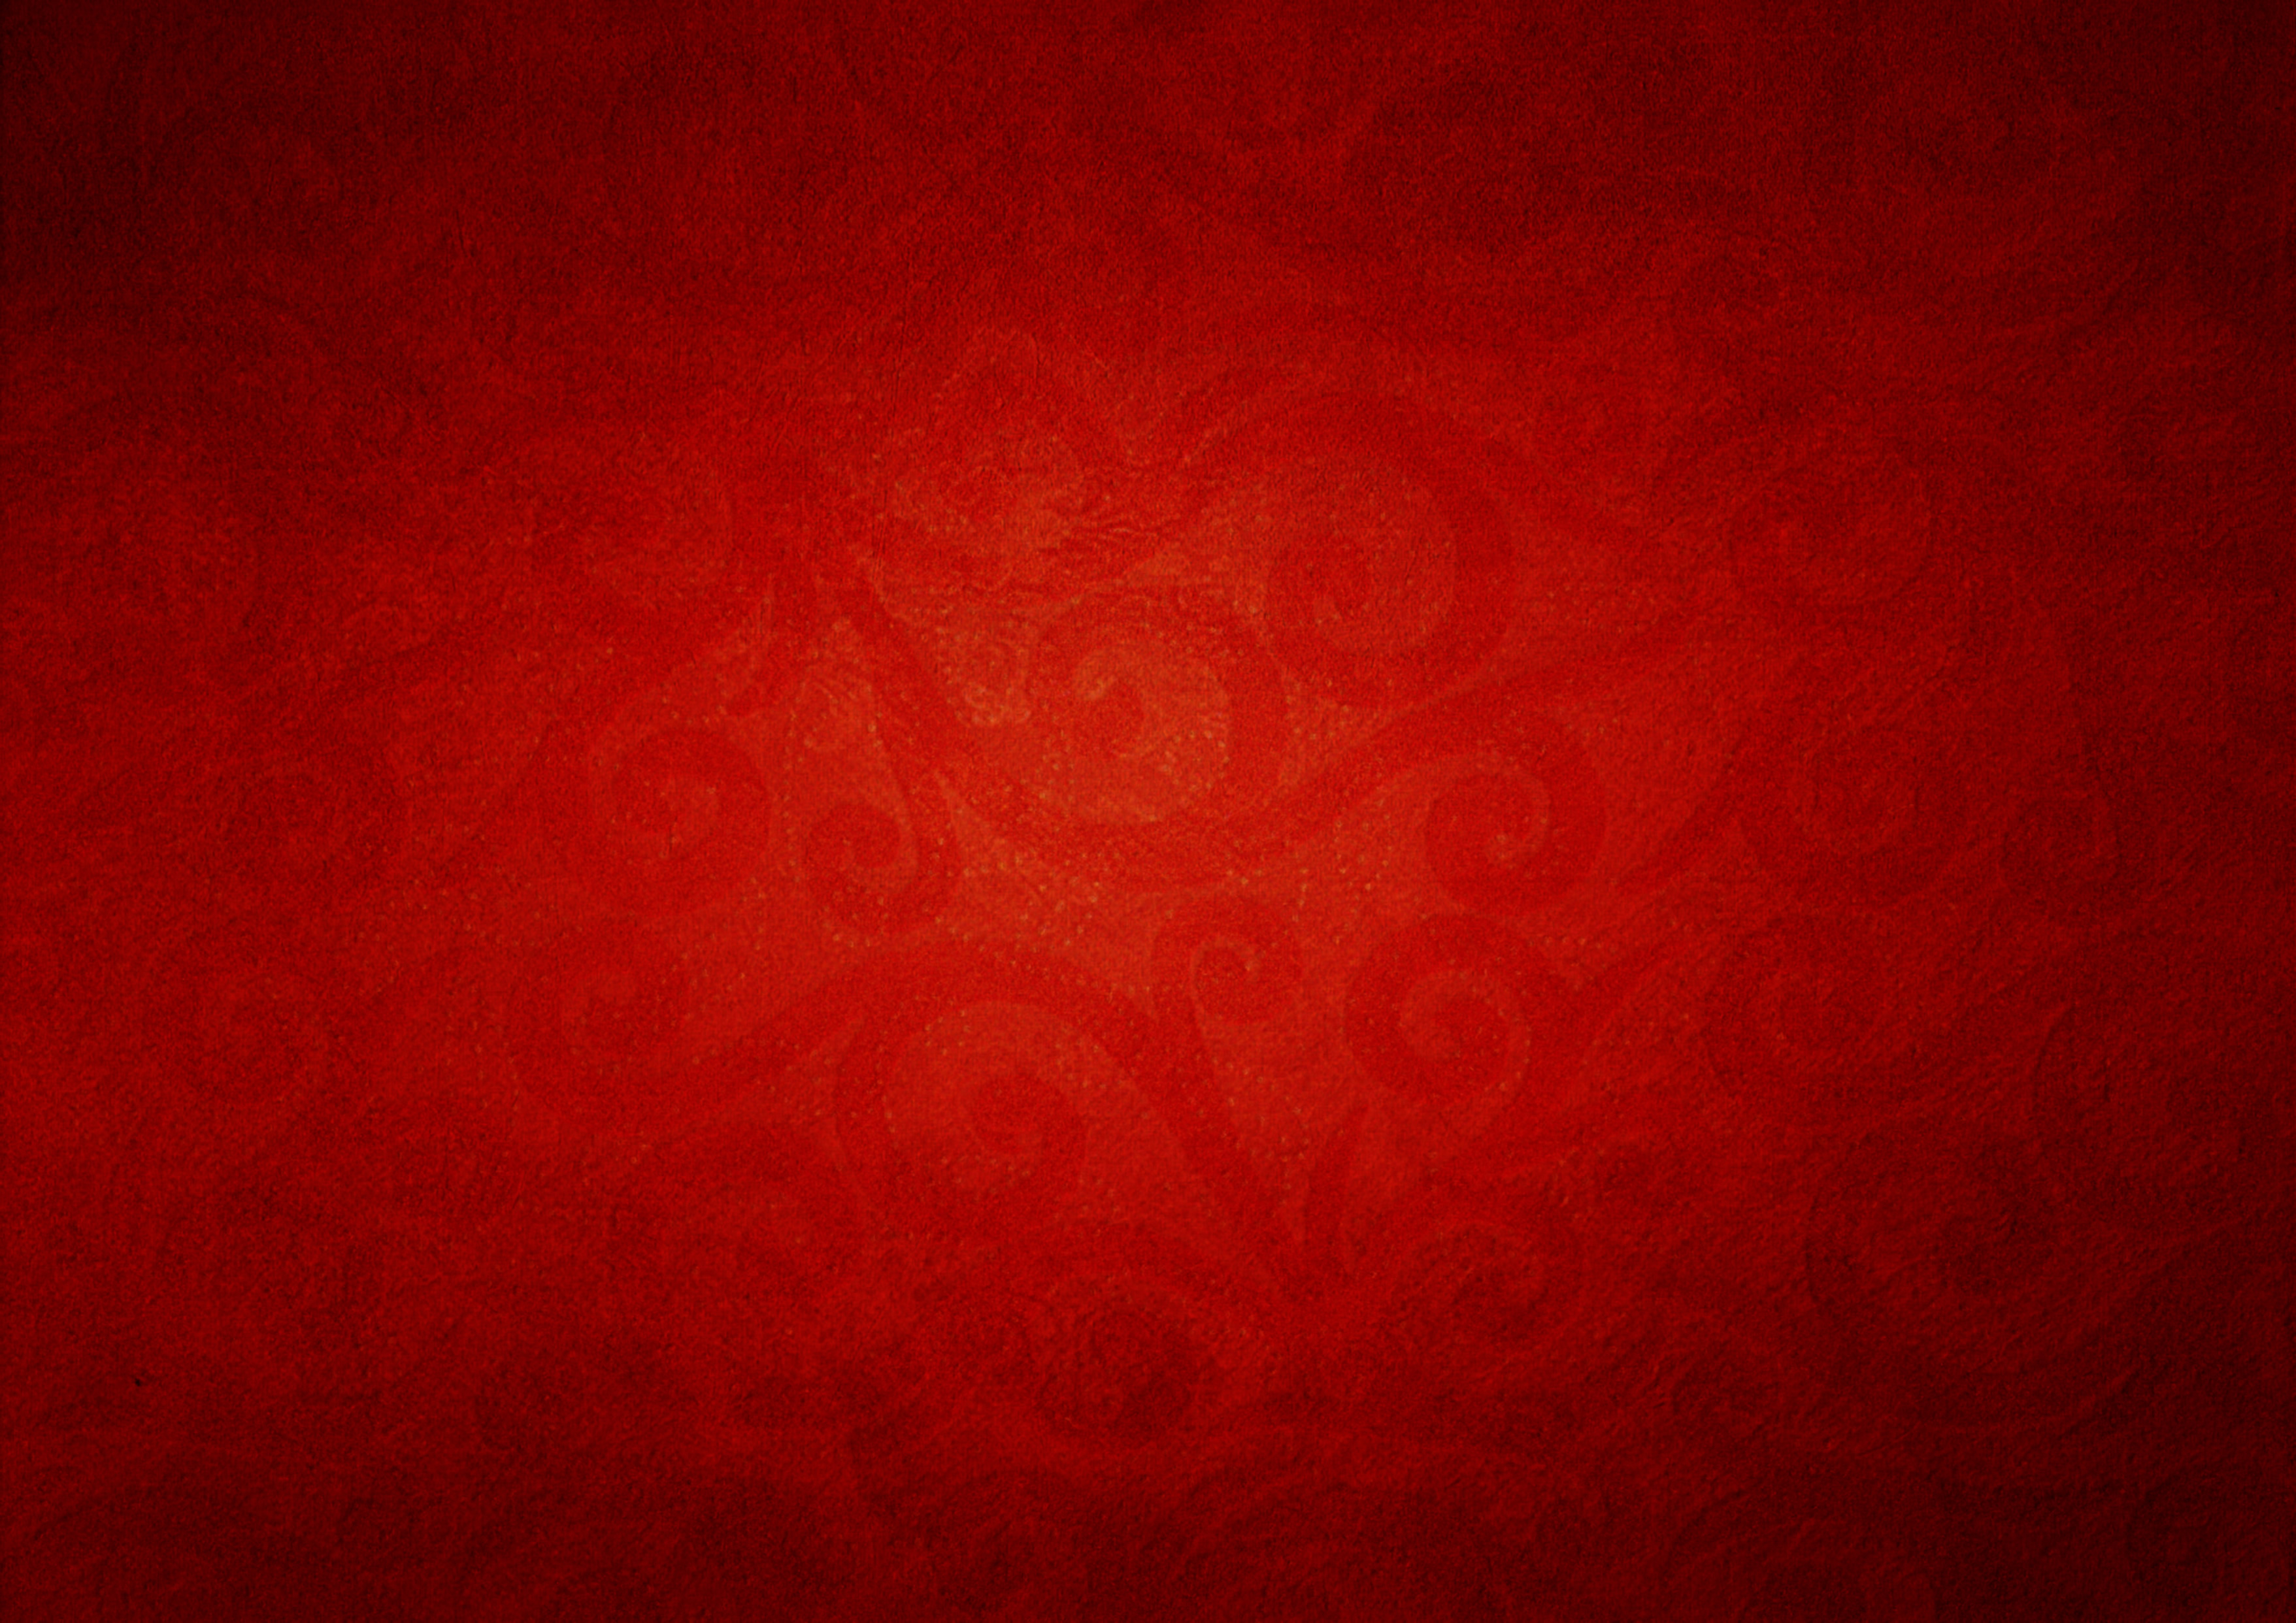 red texture background – The Gower Telford